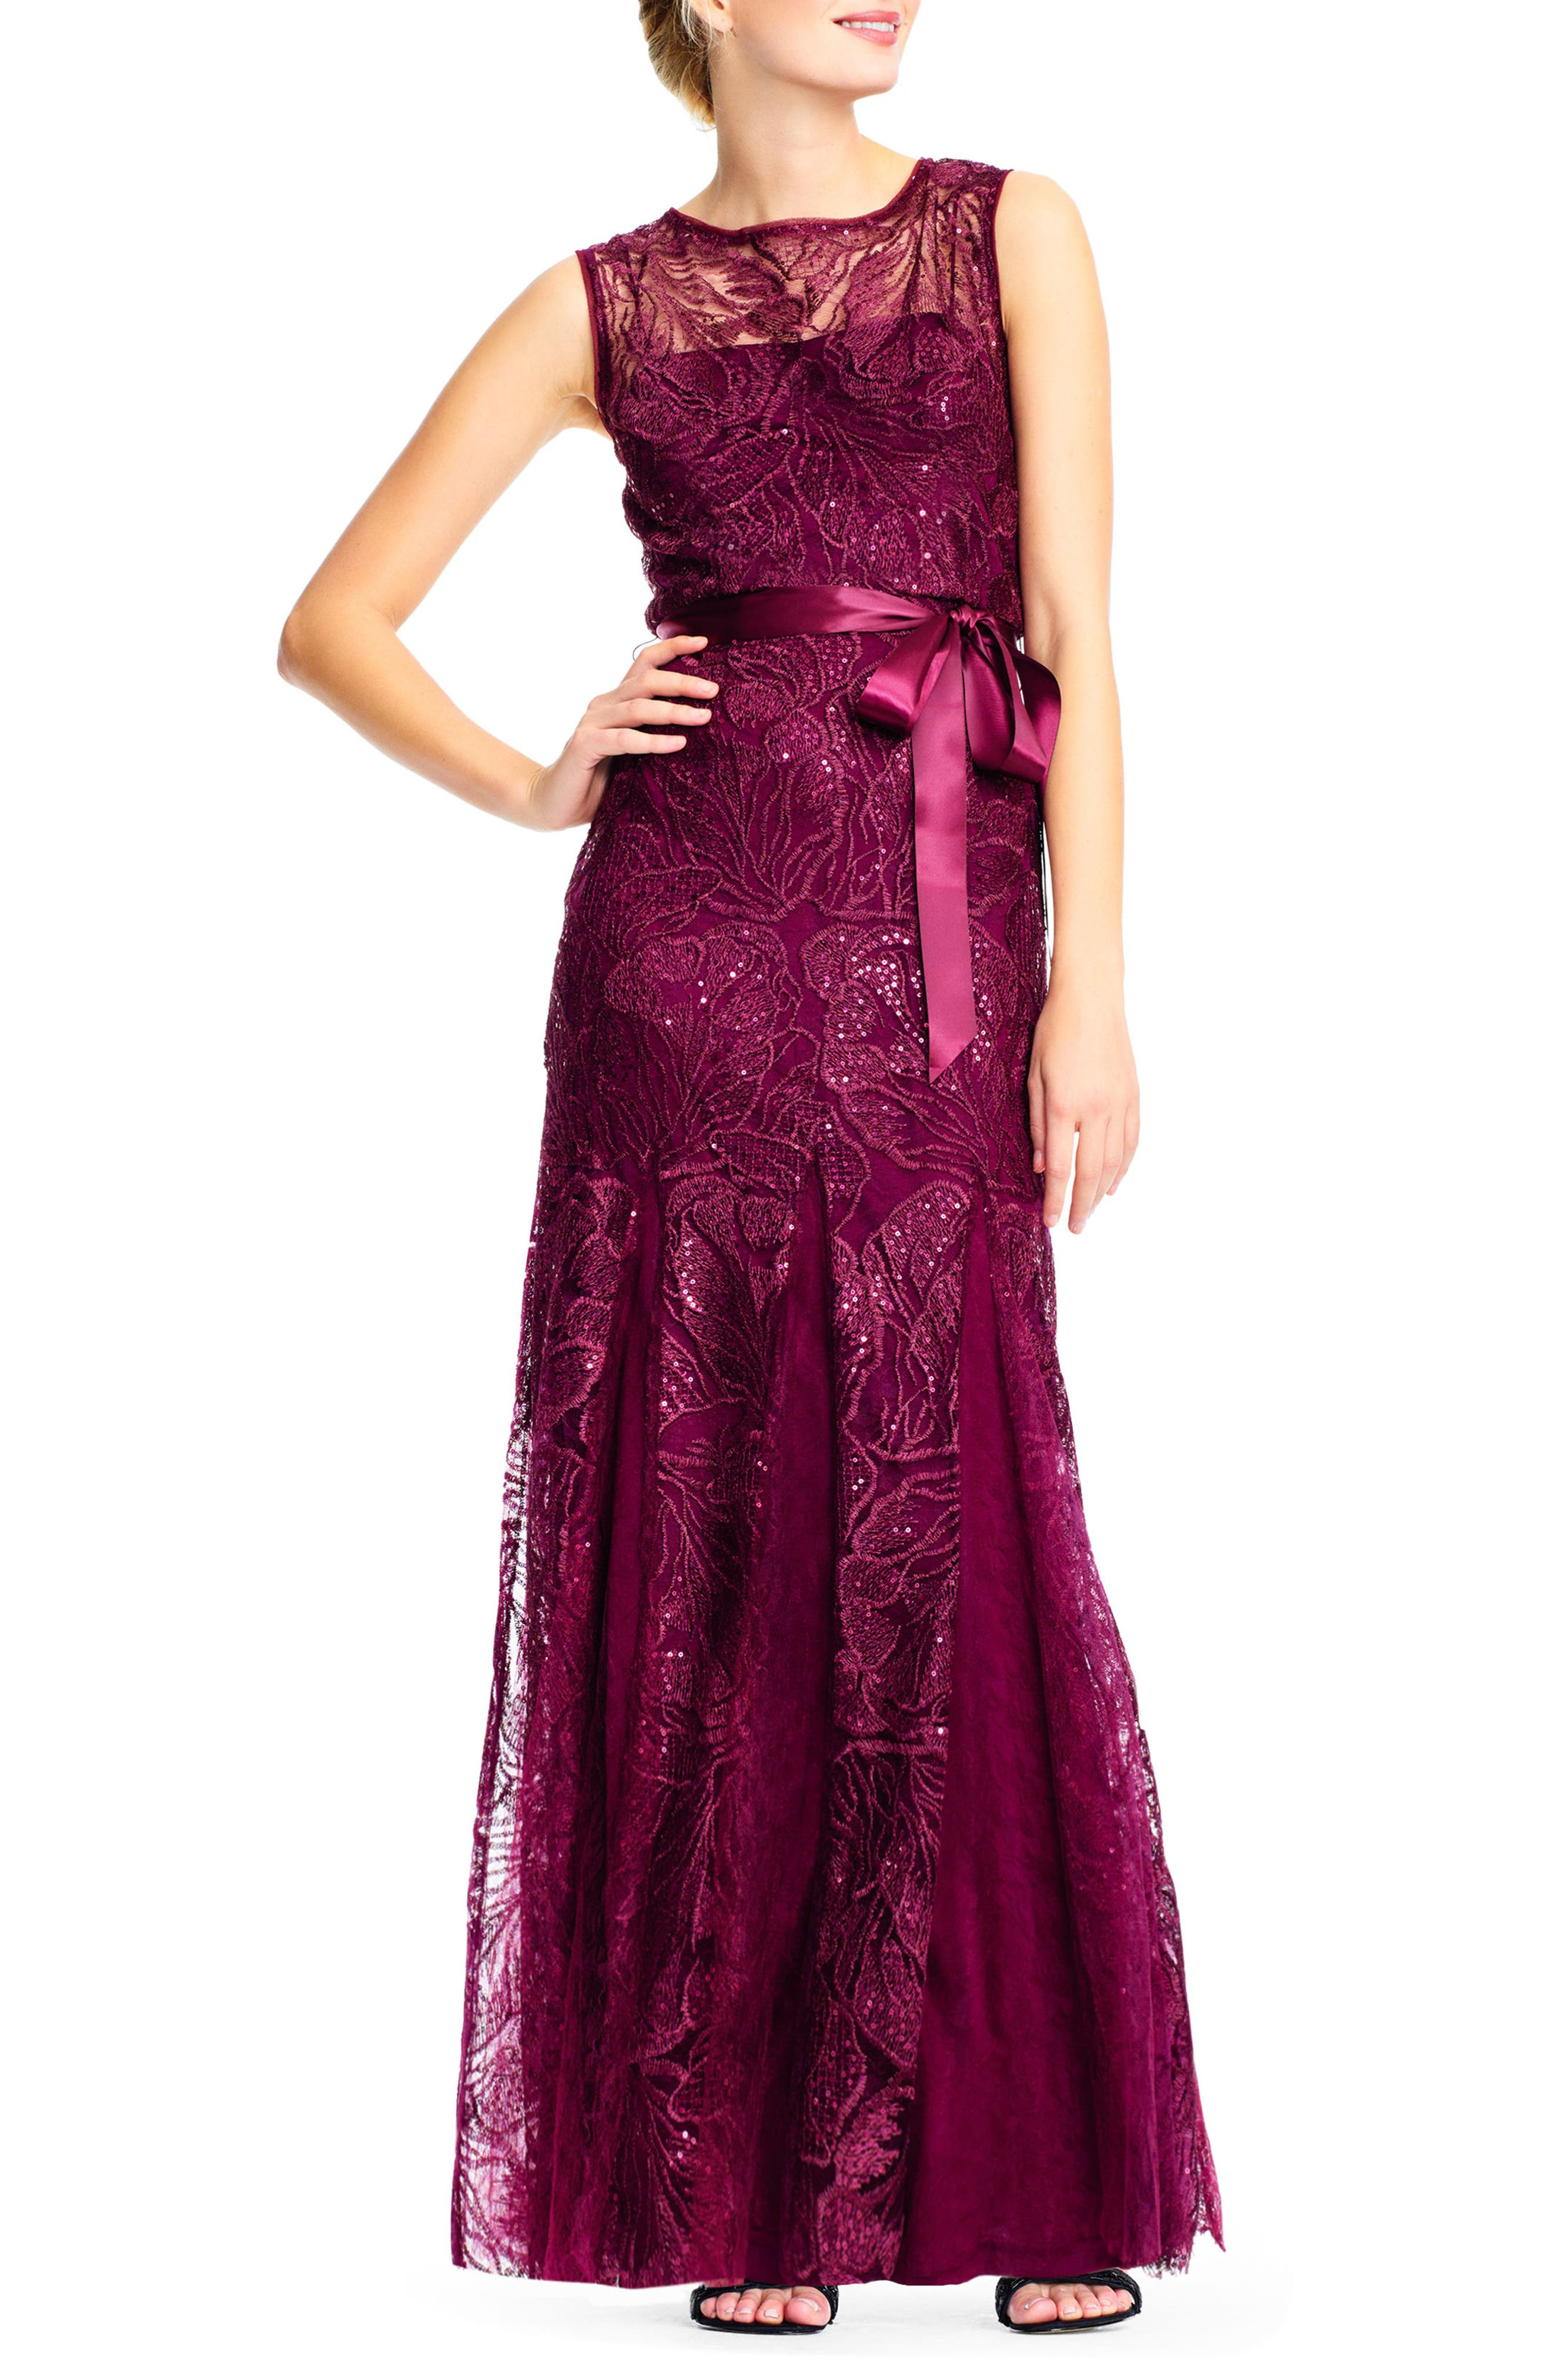 Main Image - Adrianna Papell Tie Waist Sequin Lace Gown